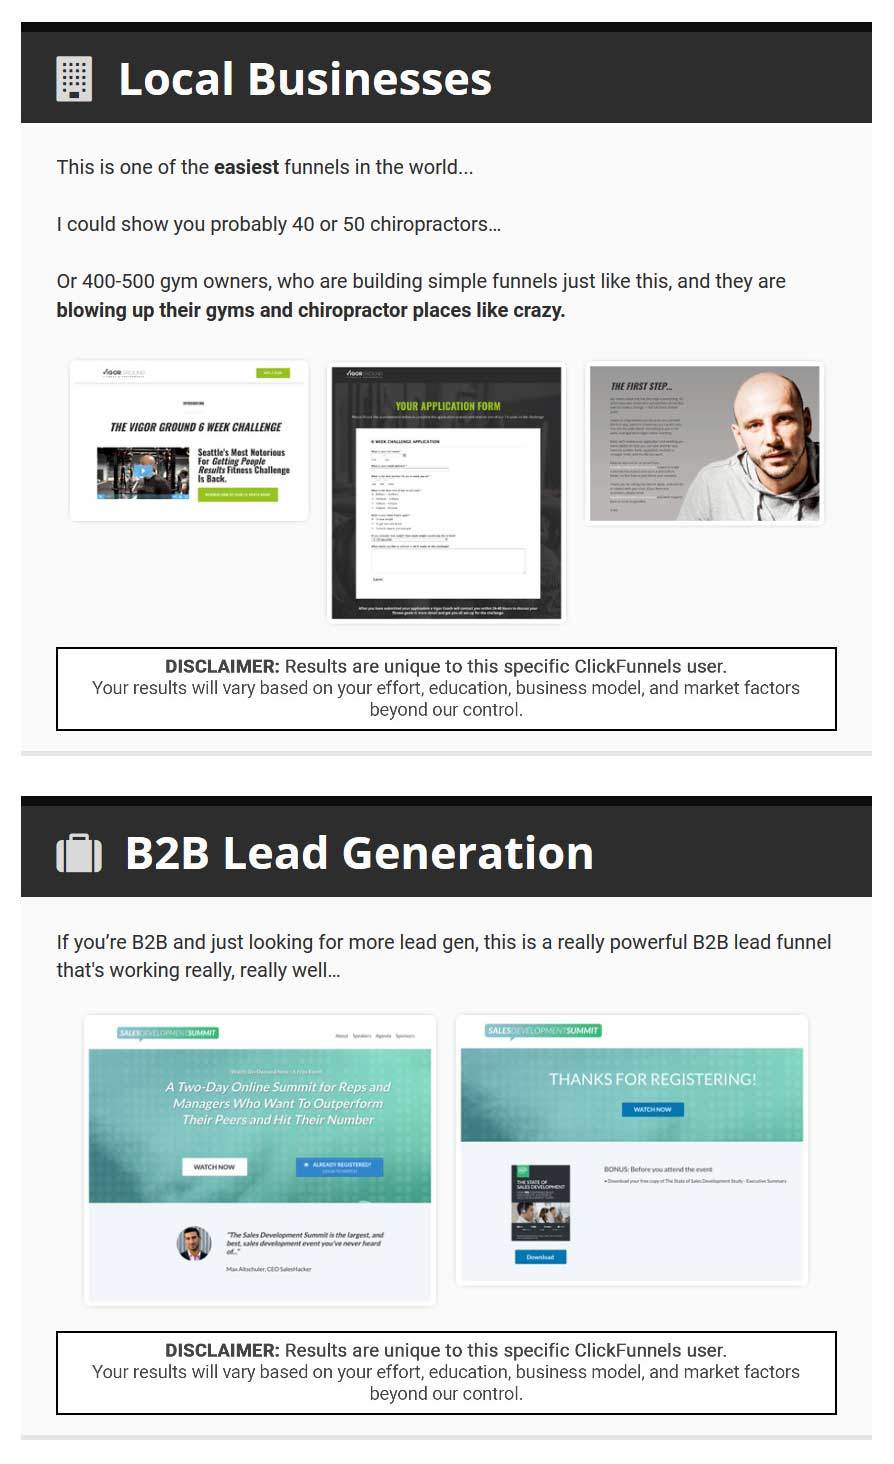 clickfunnels for local businesses